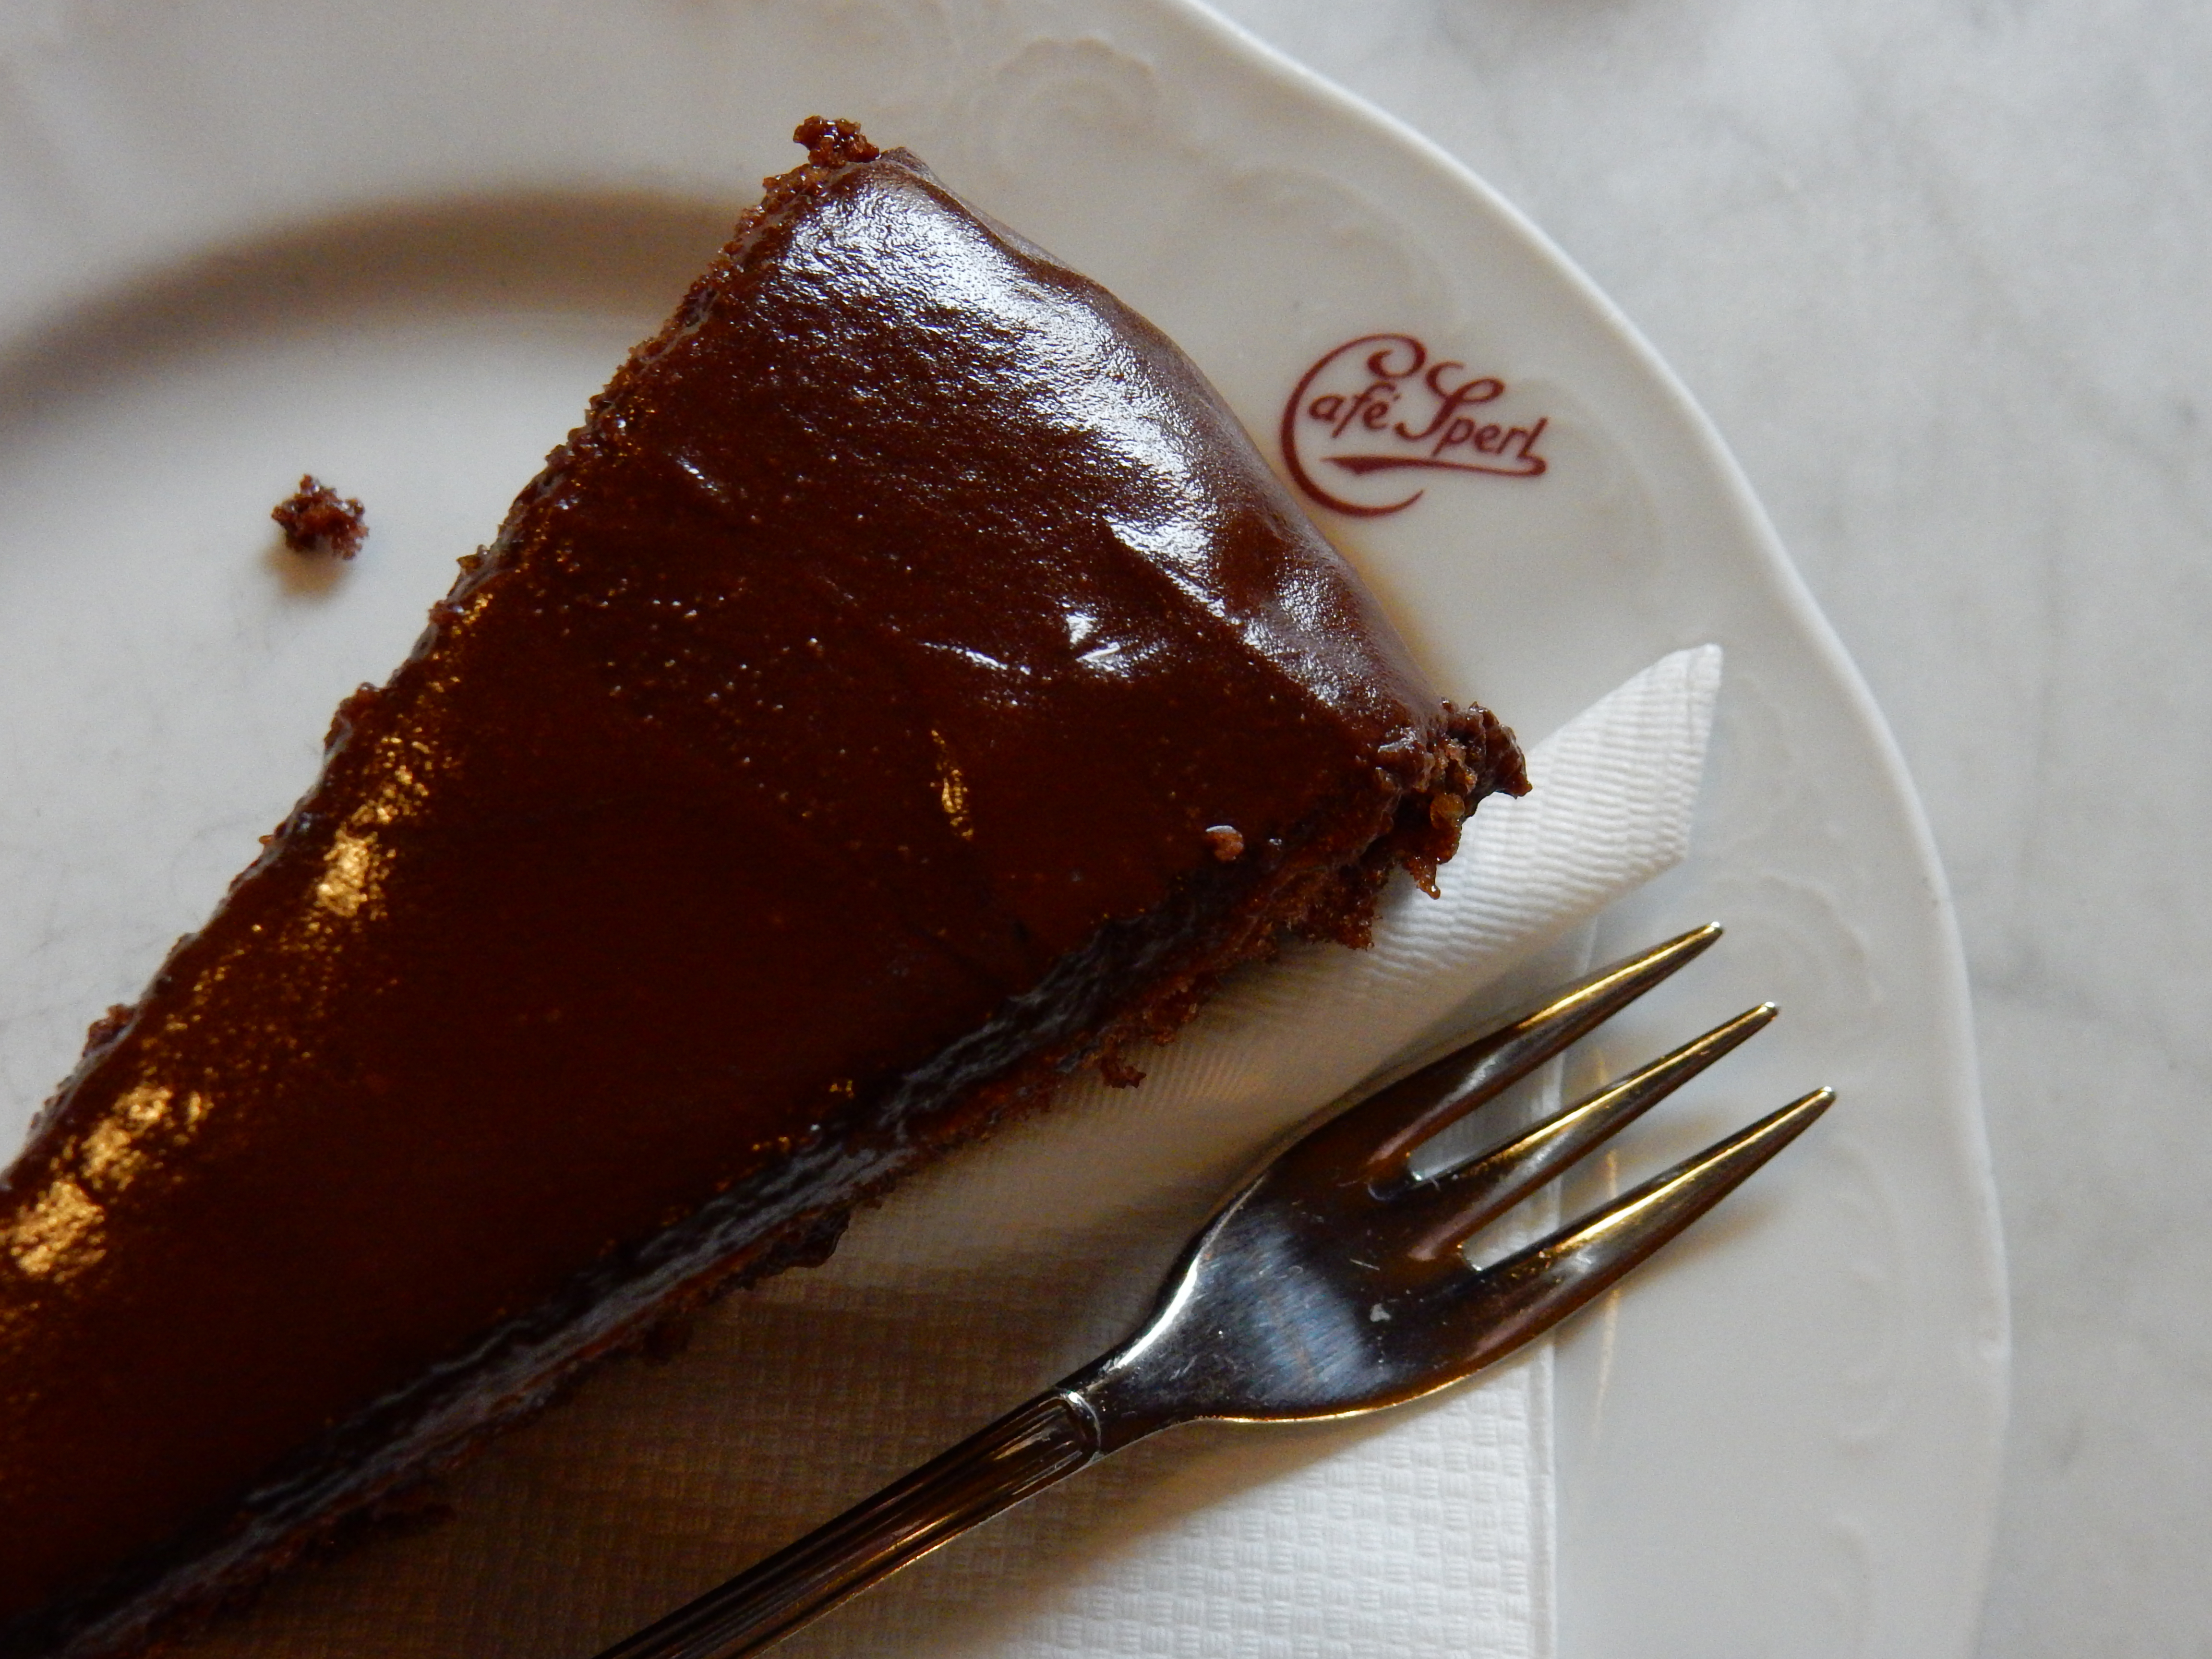 Cafe Sperl Vienna Sacher Torte